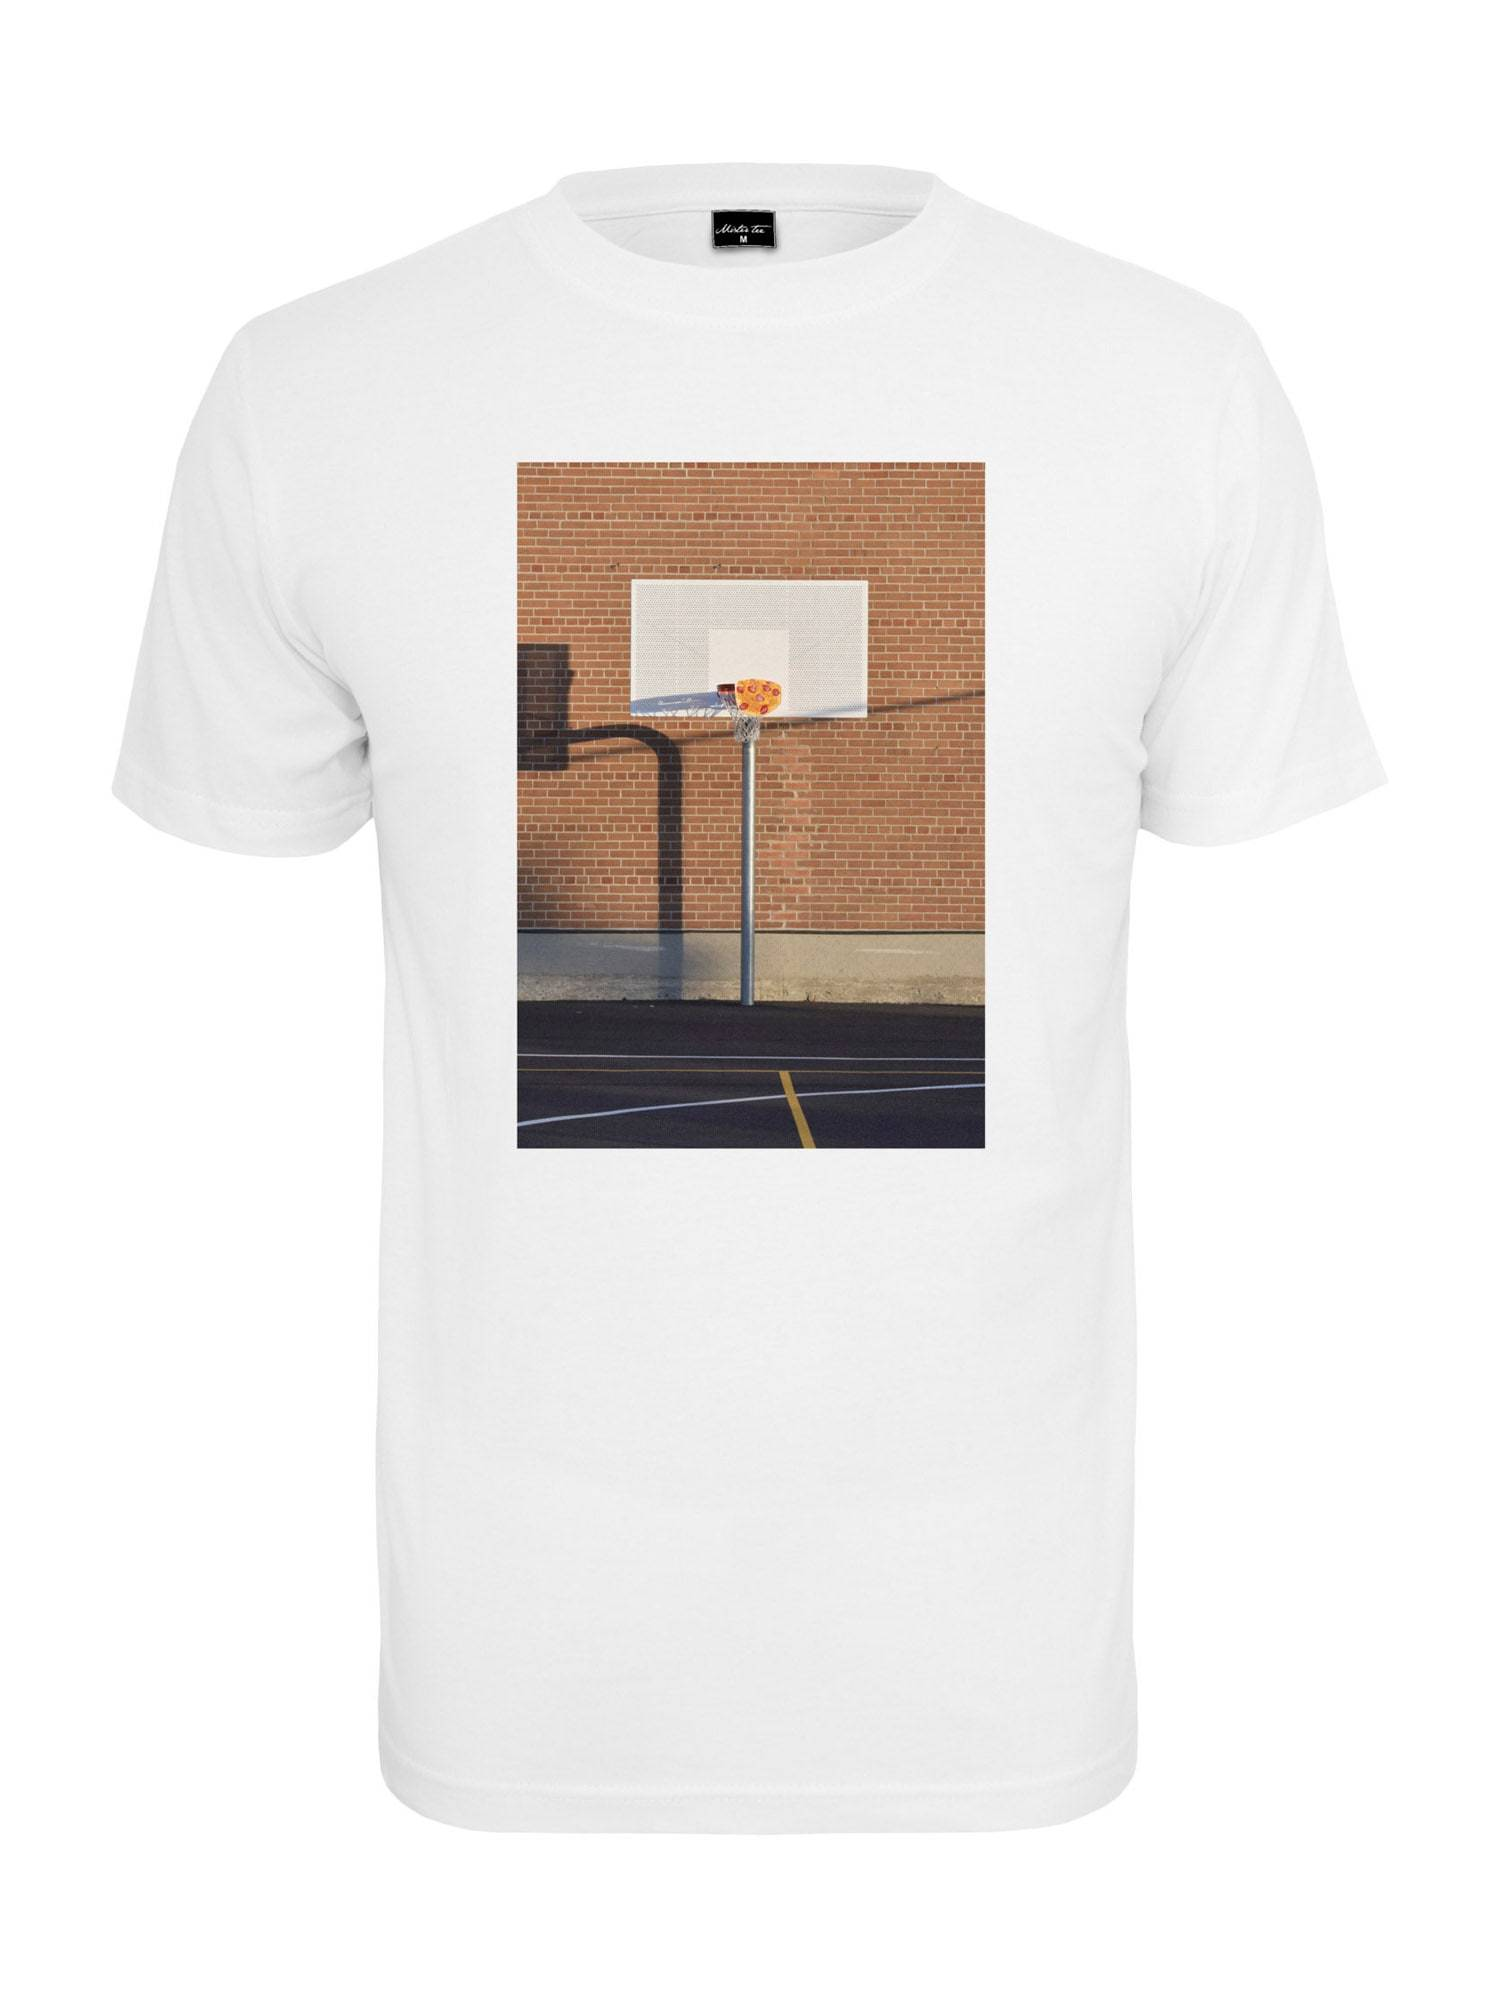 Tee T-Shirt 'Pizza Basketball Court'  - Blanc - Taille: L - male